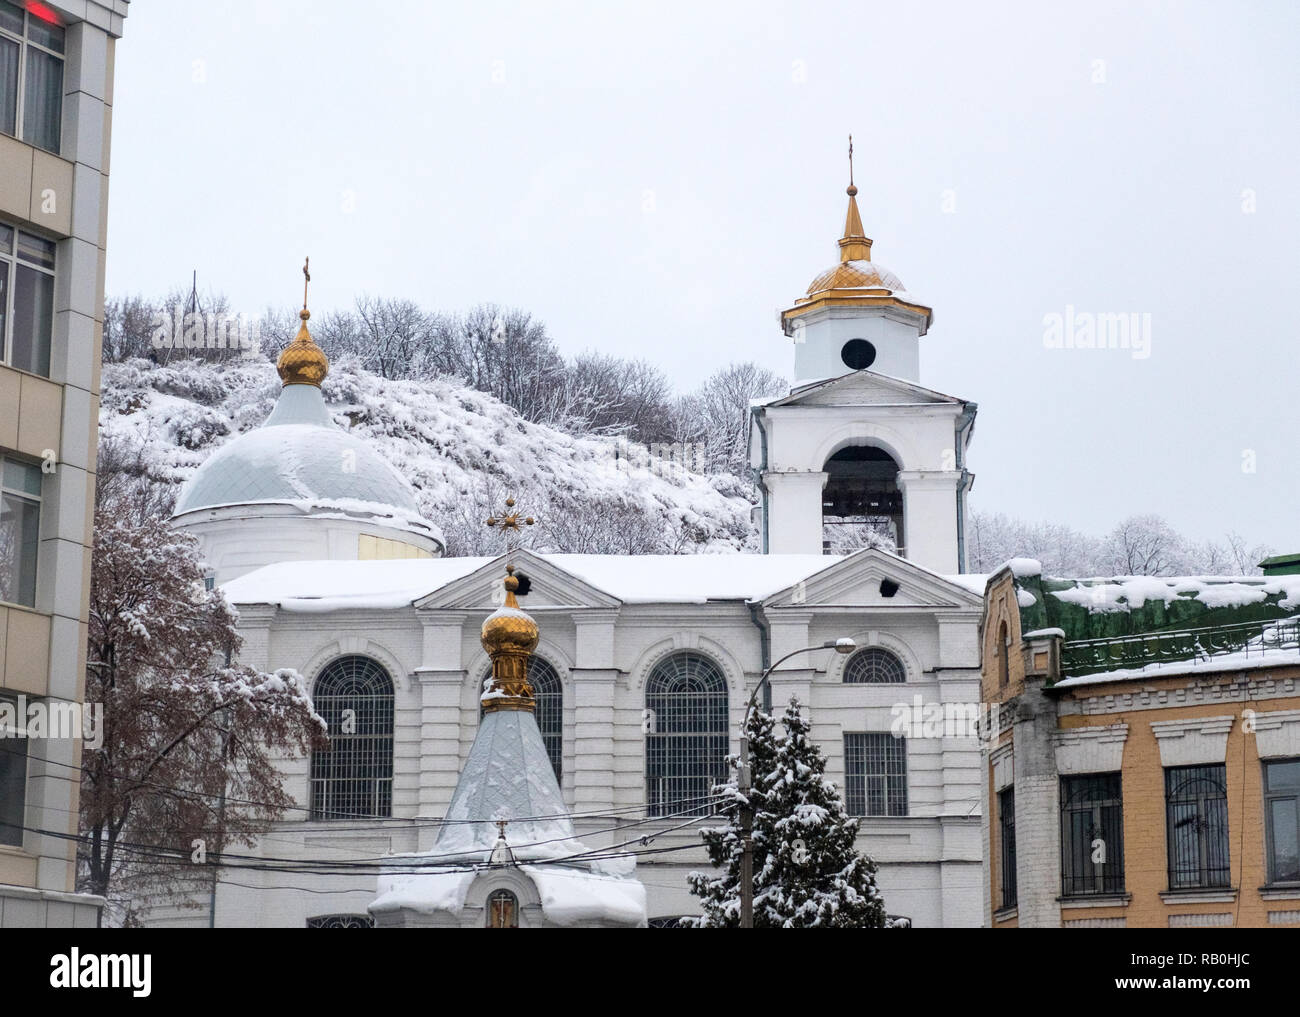 Kyiv, Ukraine - December 15, 2018: Church on Podil in the historical part of the city covered with snow. Kiev, Ukraine - Stock Image